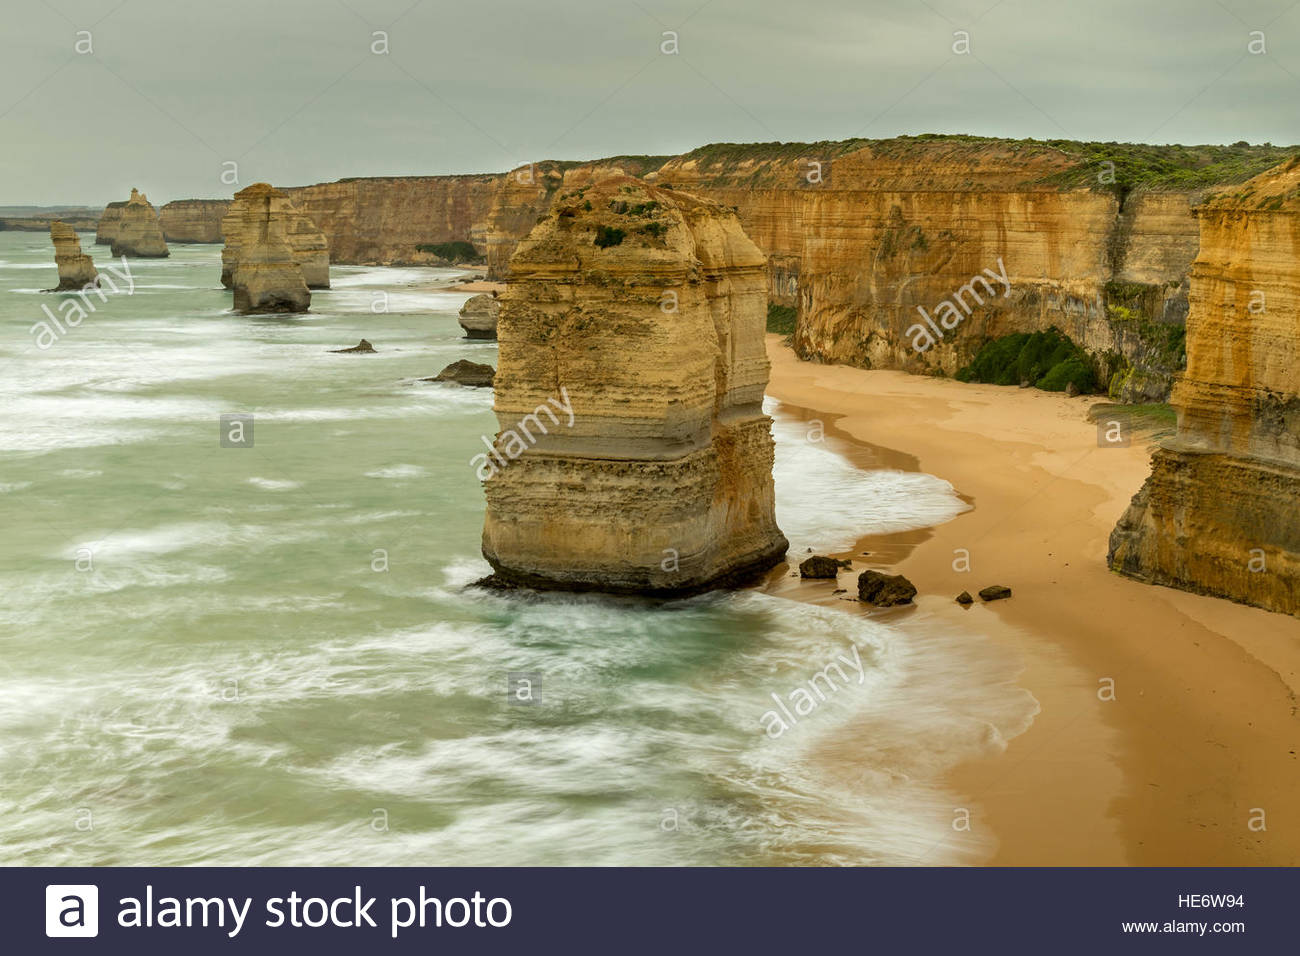 Douze Apôtres, Port Campbell National Park, Great Ocean Road, Victoria, Australie scenic drives Photo Stock